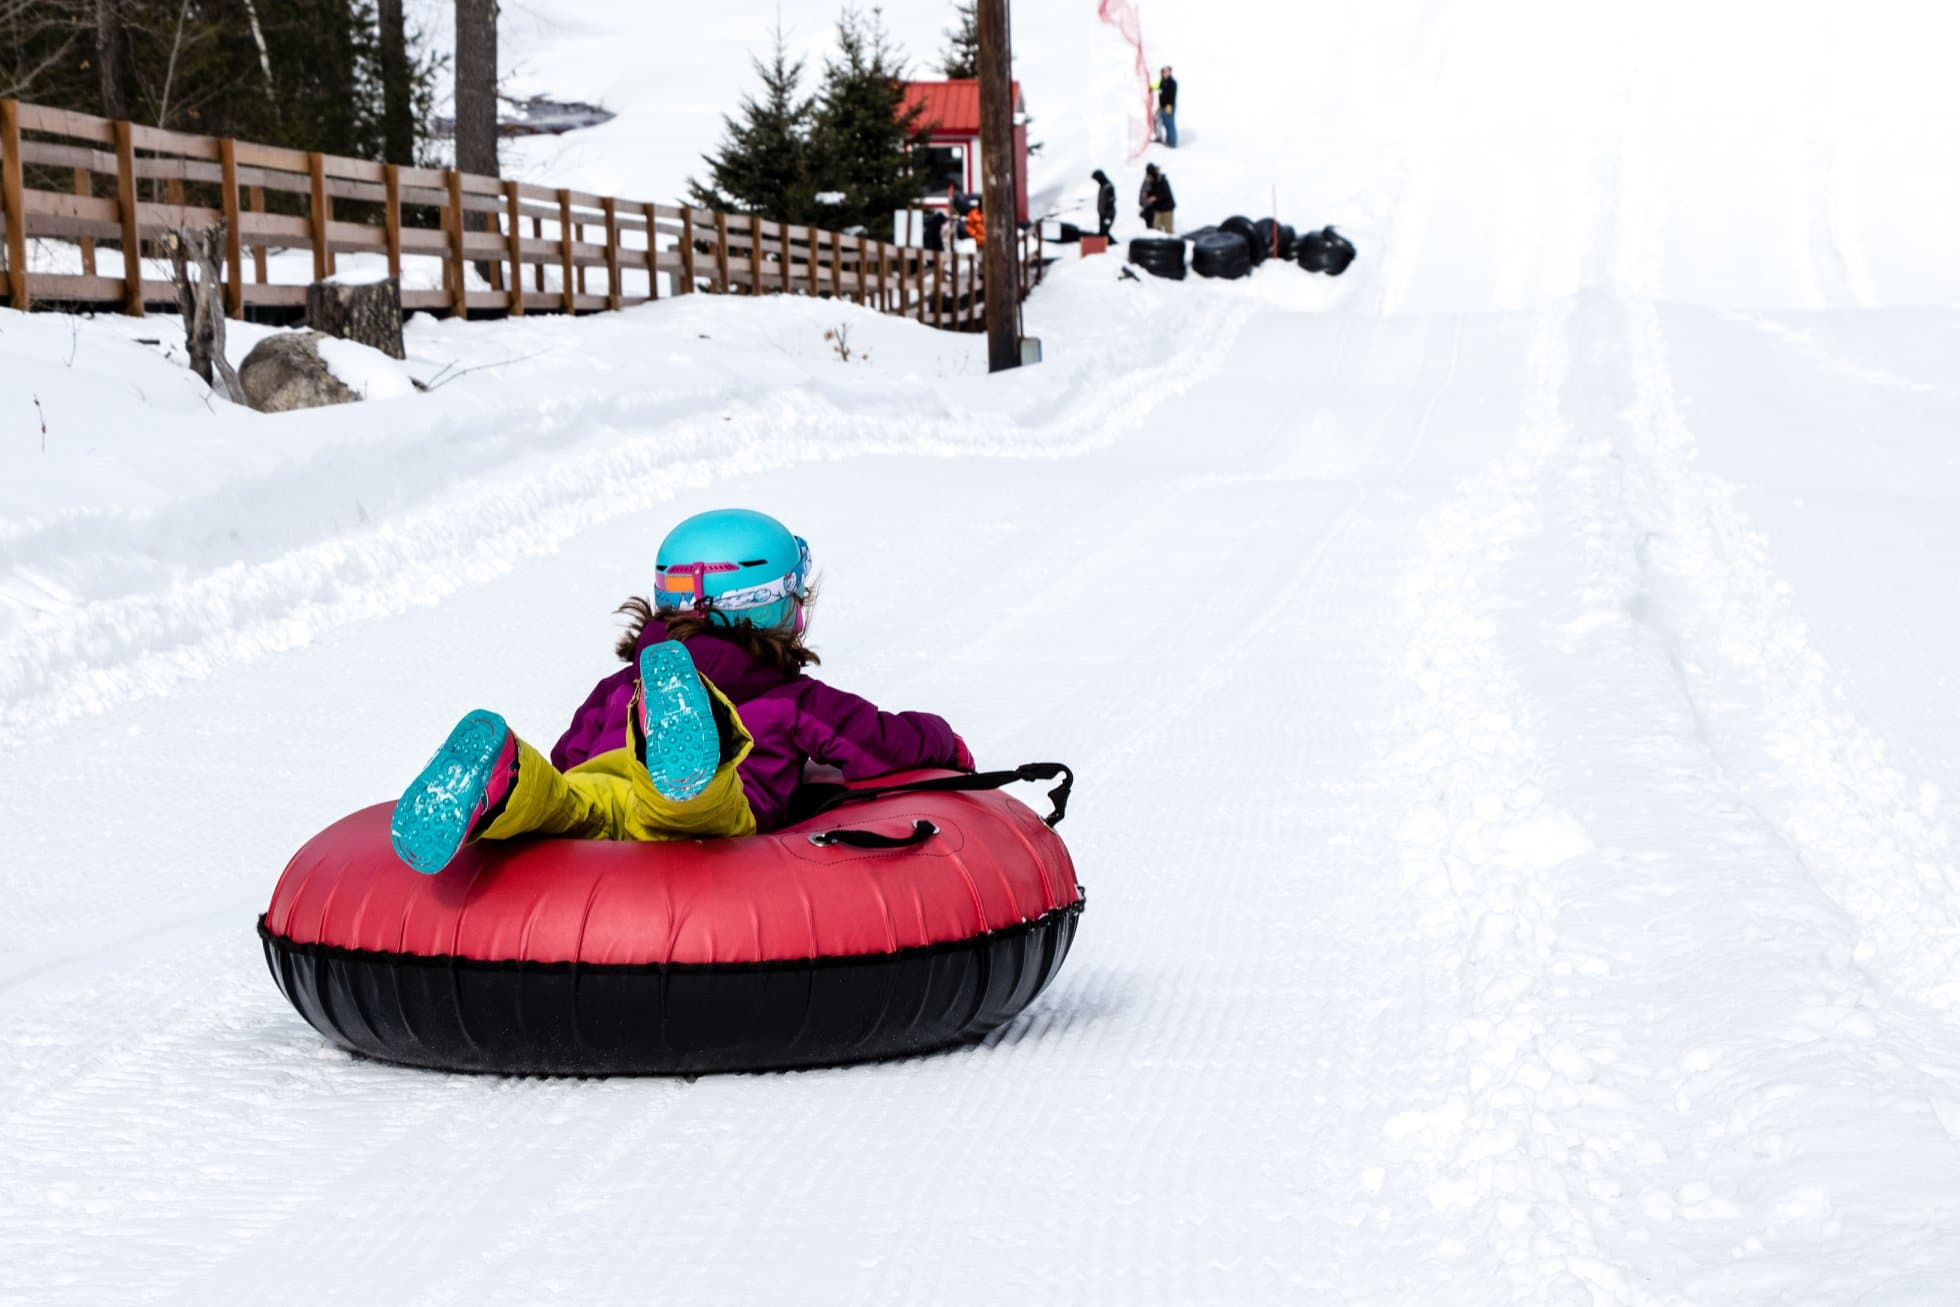 Image of a child tubing at McIntyre Ski Area in New Hampshire